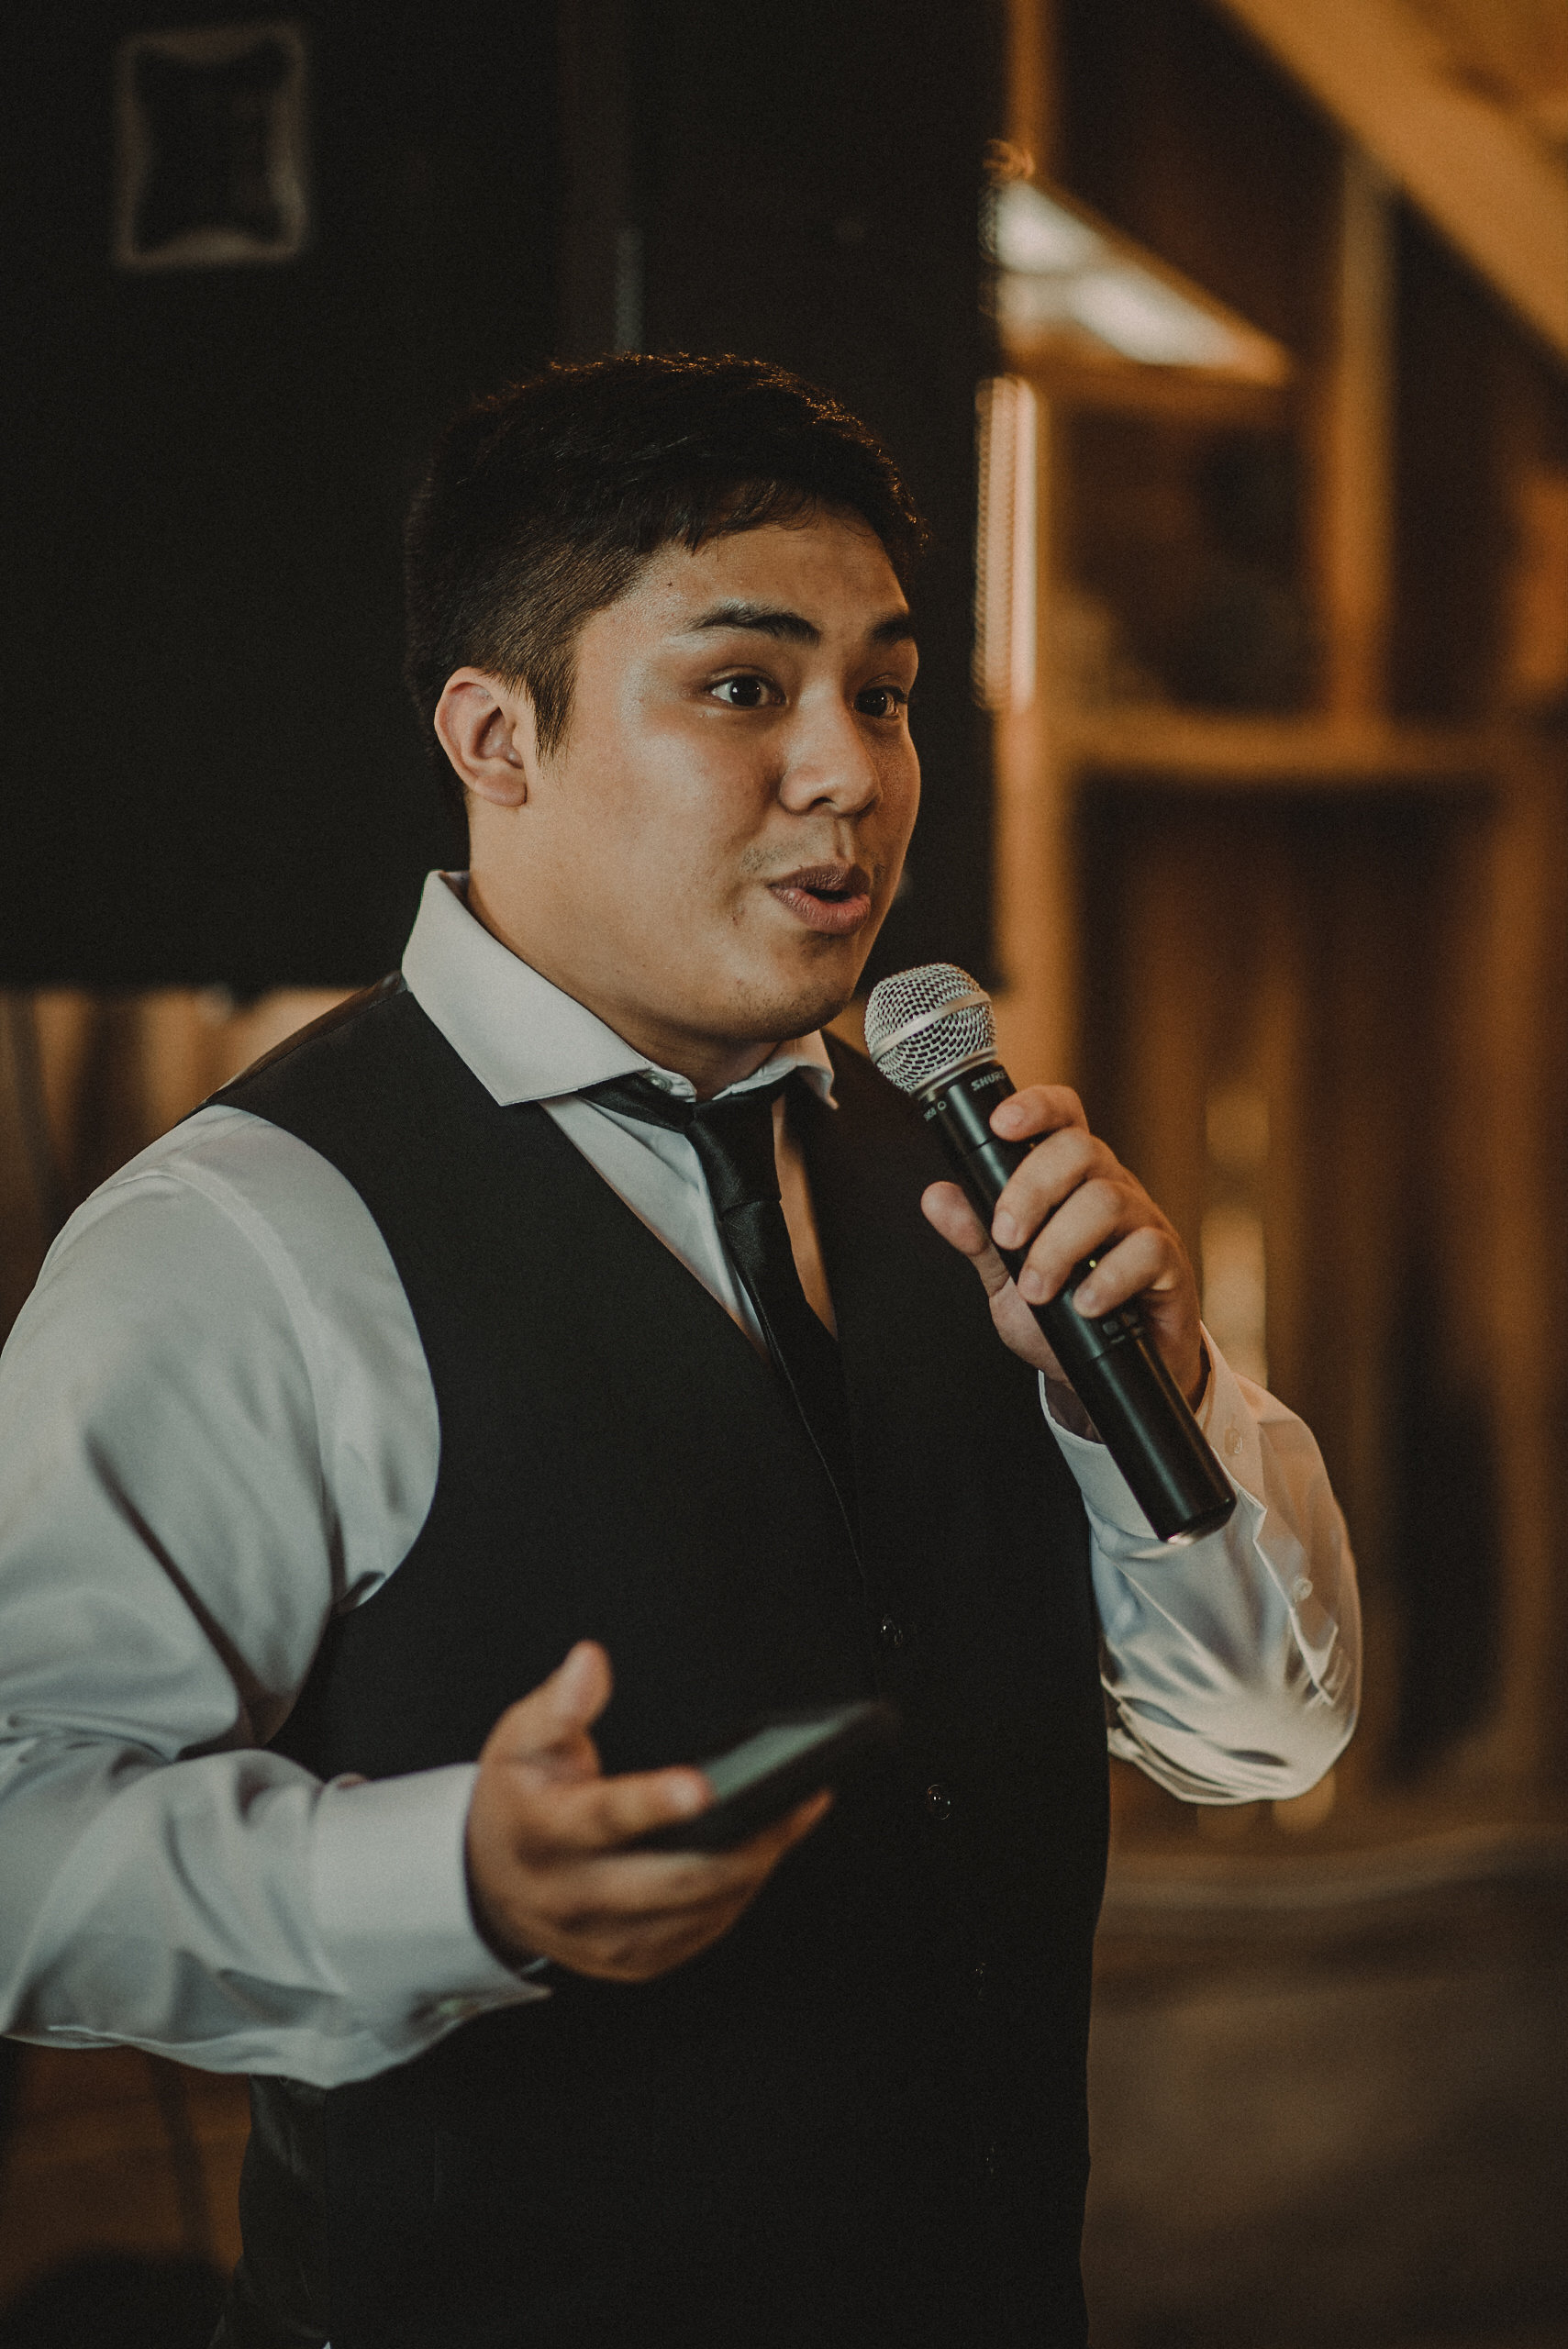 Groomsman giving speech at wedding